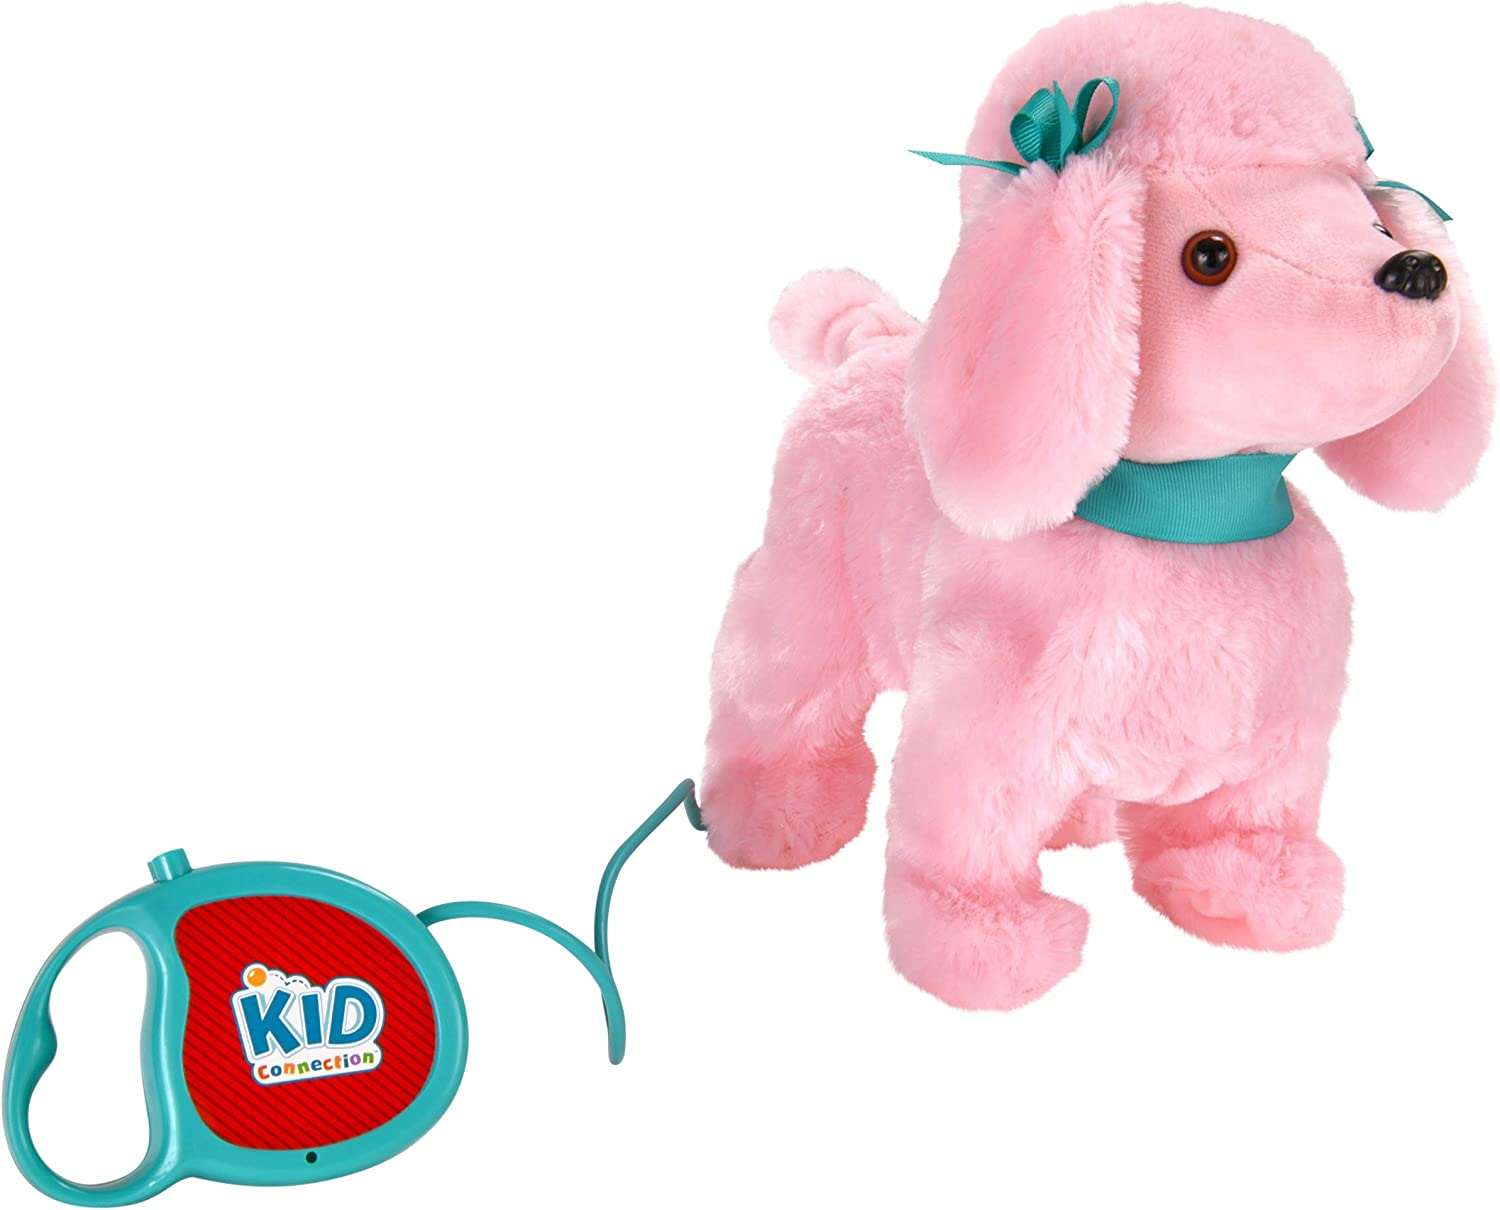 Kid Connection 9 Plush Walking Pet Dog Barking Tail Wagging Pink Poodle Remote Control Leash